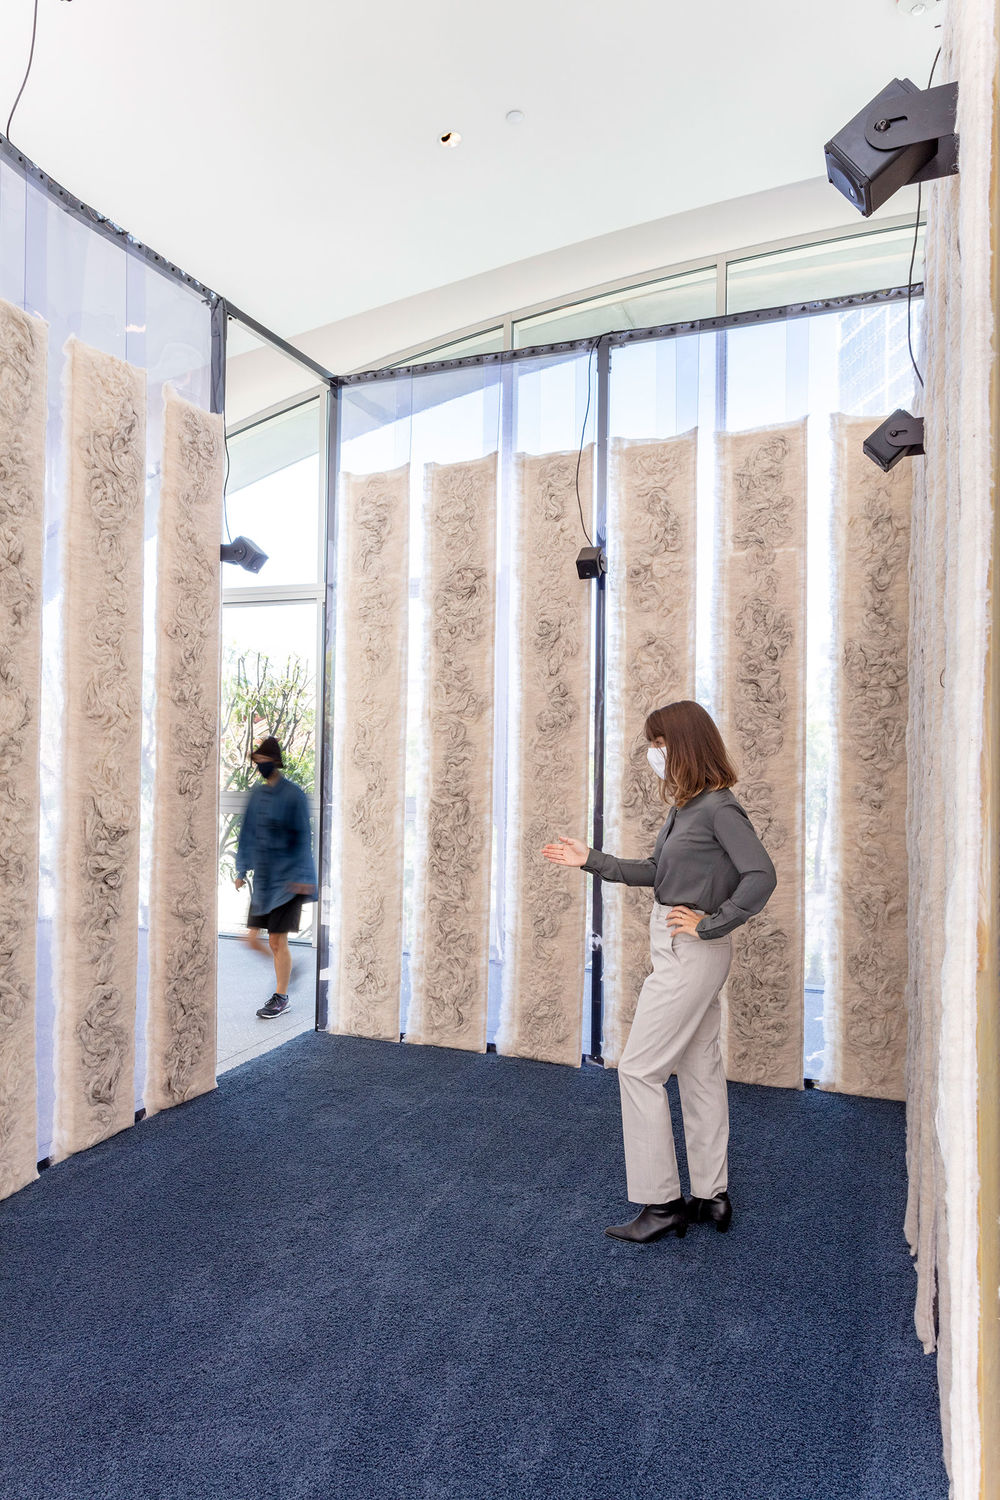 Inside a structure with plastic walls covered in strips of tan fiber, with two women passing through